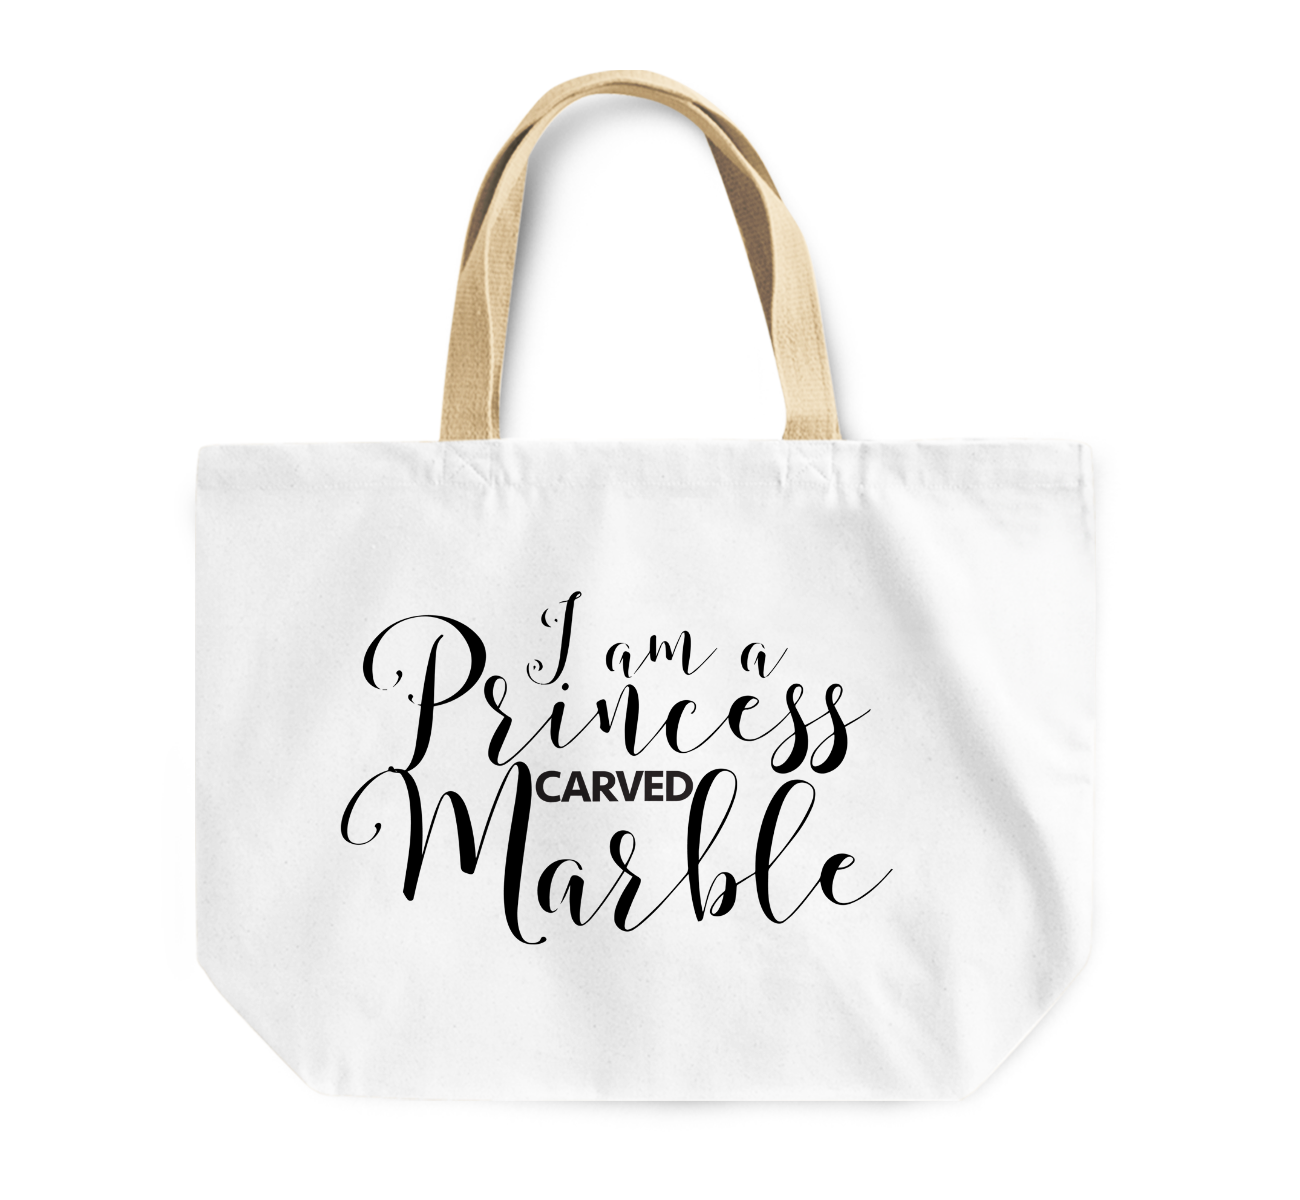 Tote Bag i Am a Princess Carved Marble Women Power Reusable Shopping Bag By Loud Universe